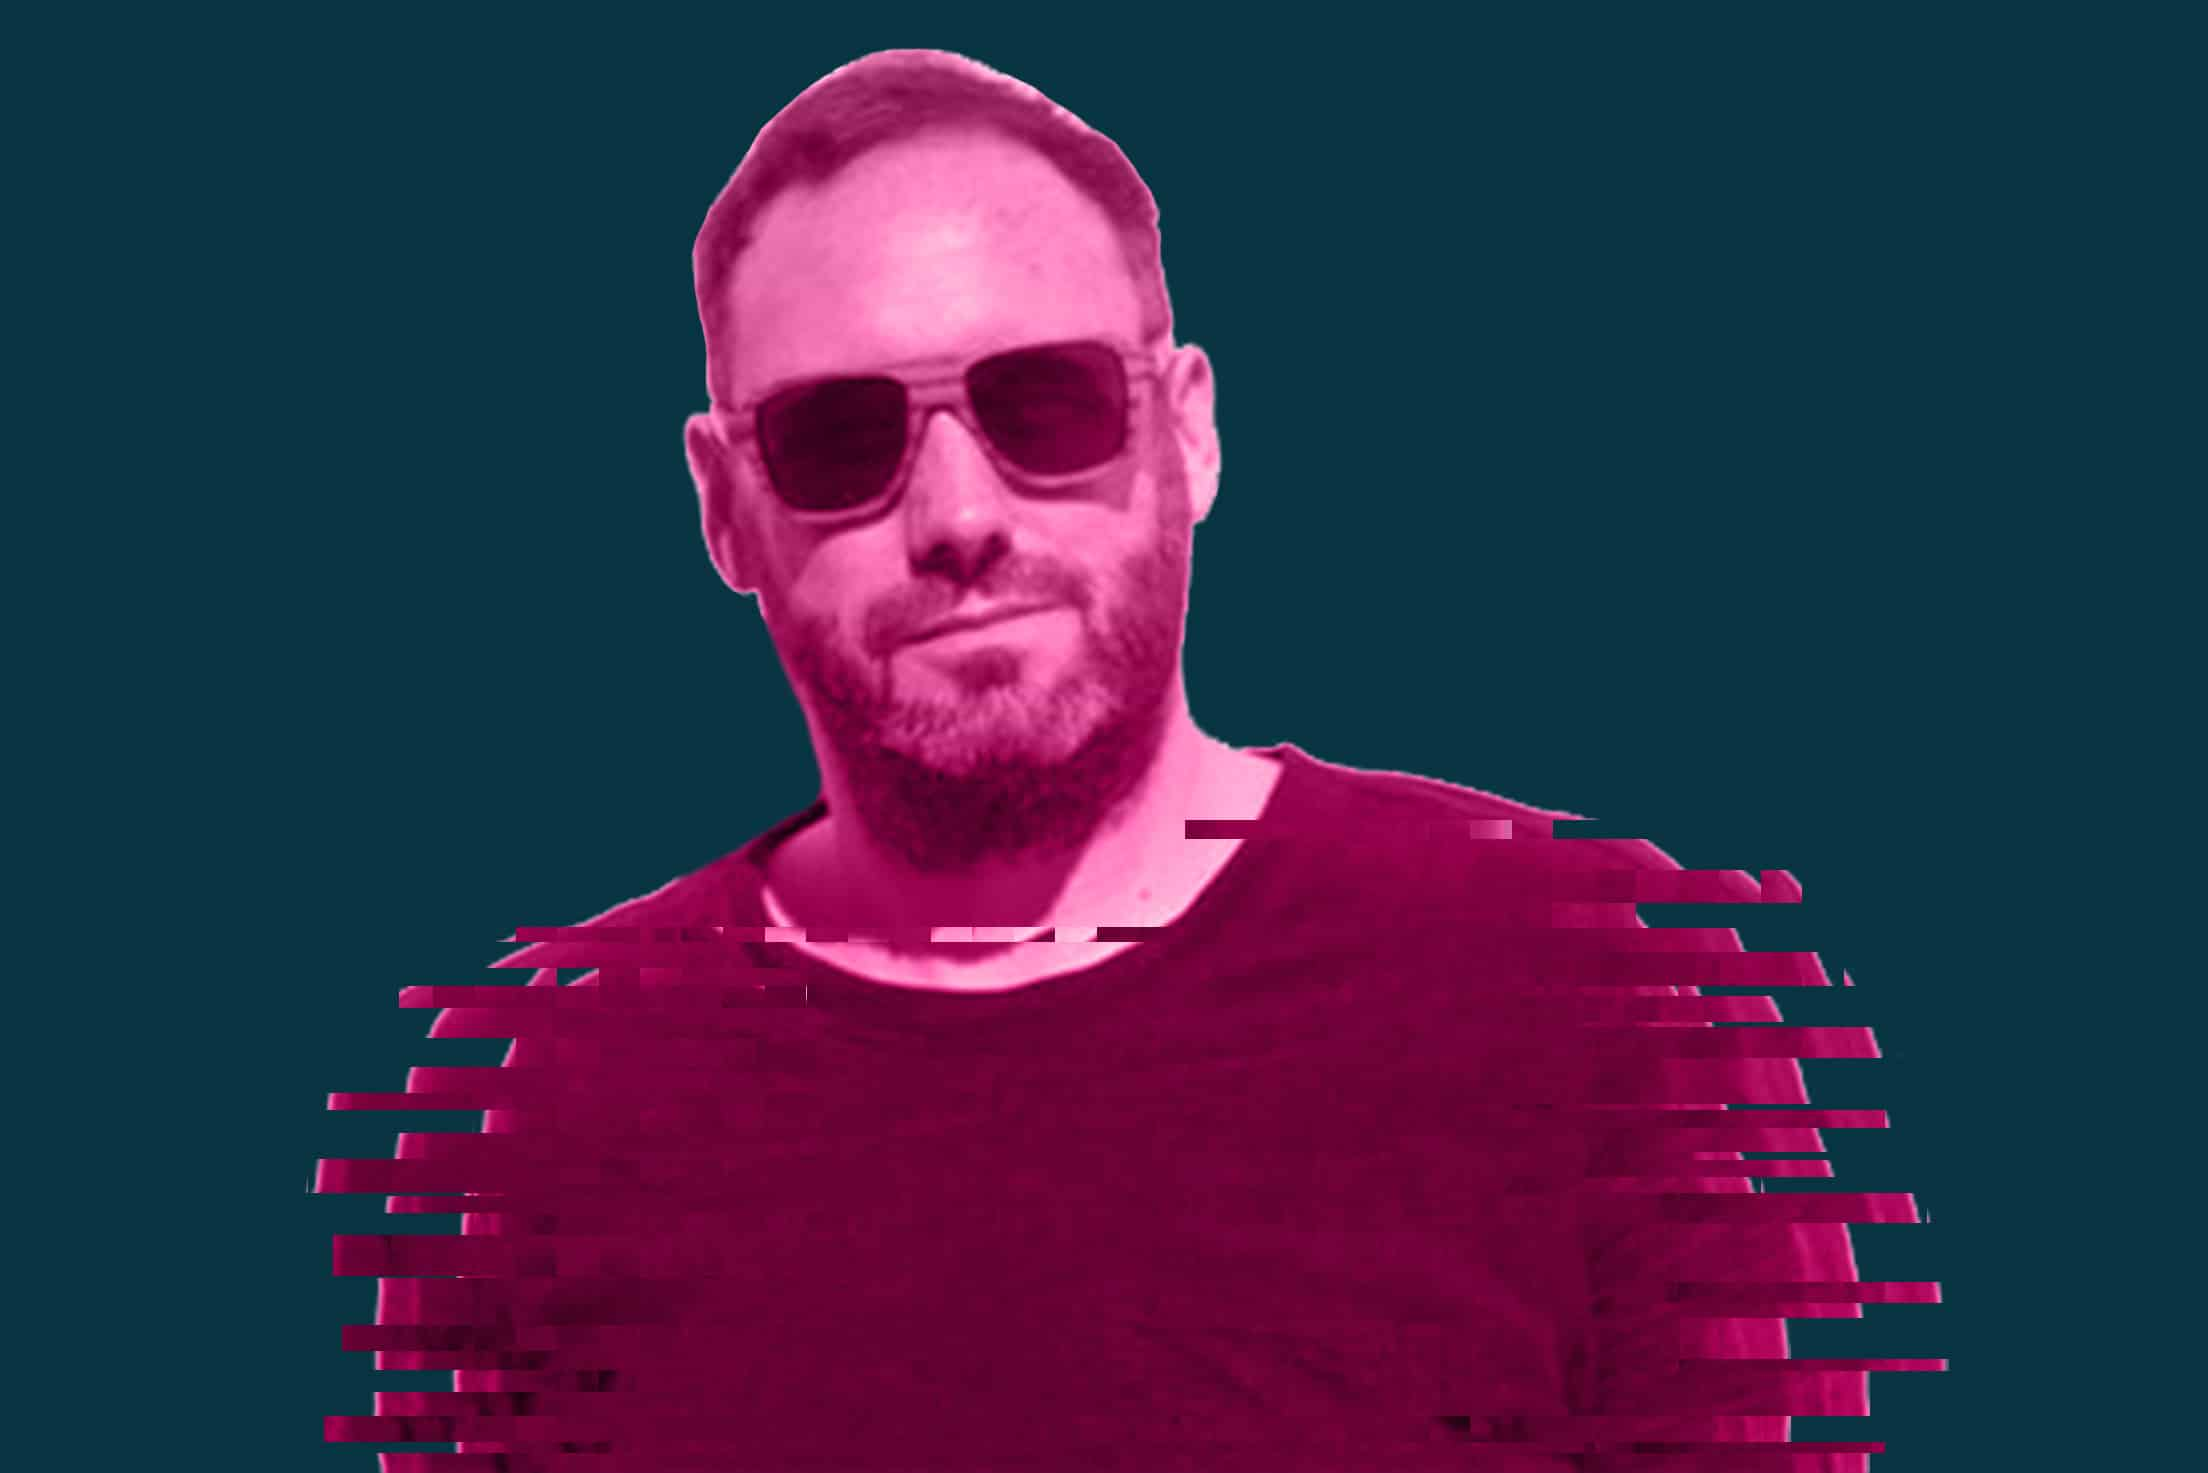 DOORLY – VALUE OF SIMPLIFYING TRACKS